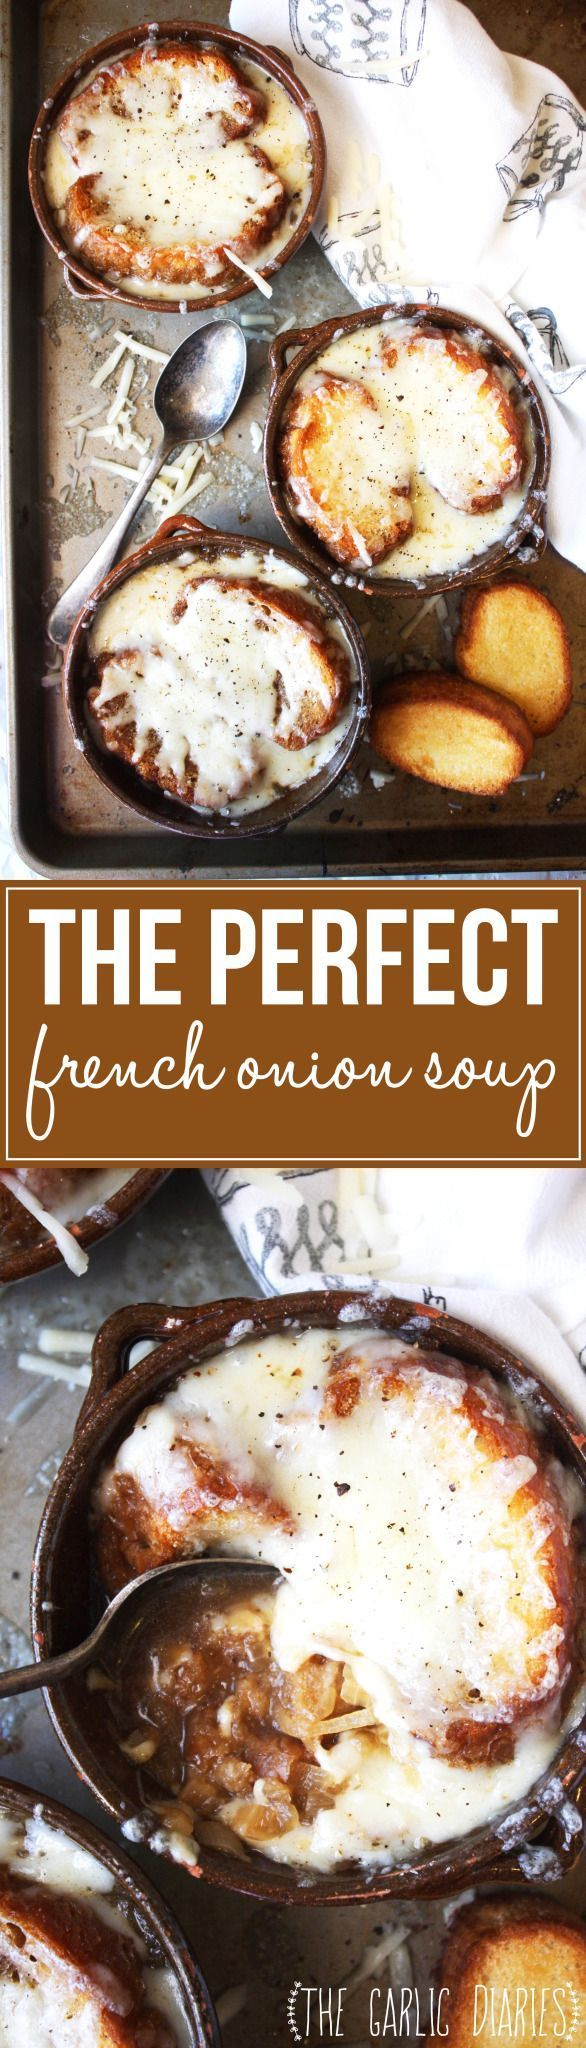 The Perfect French Onion Soup - Caramelized onions, beef broth ...